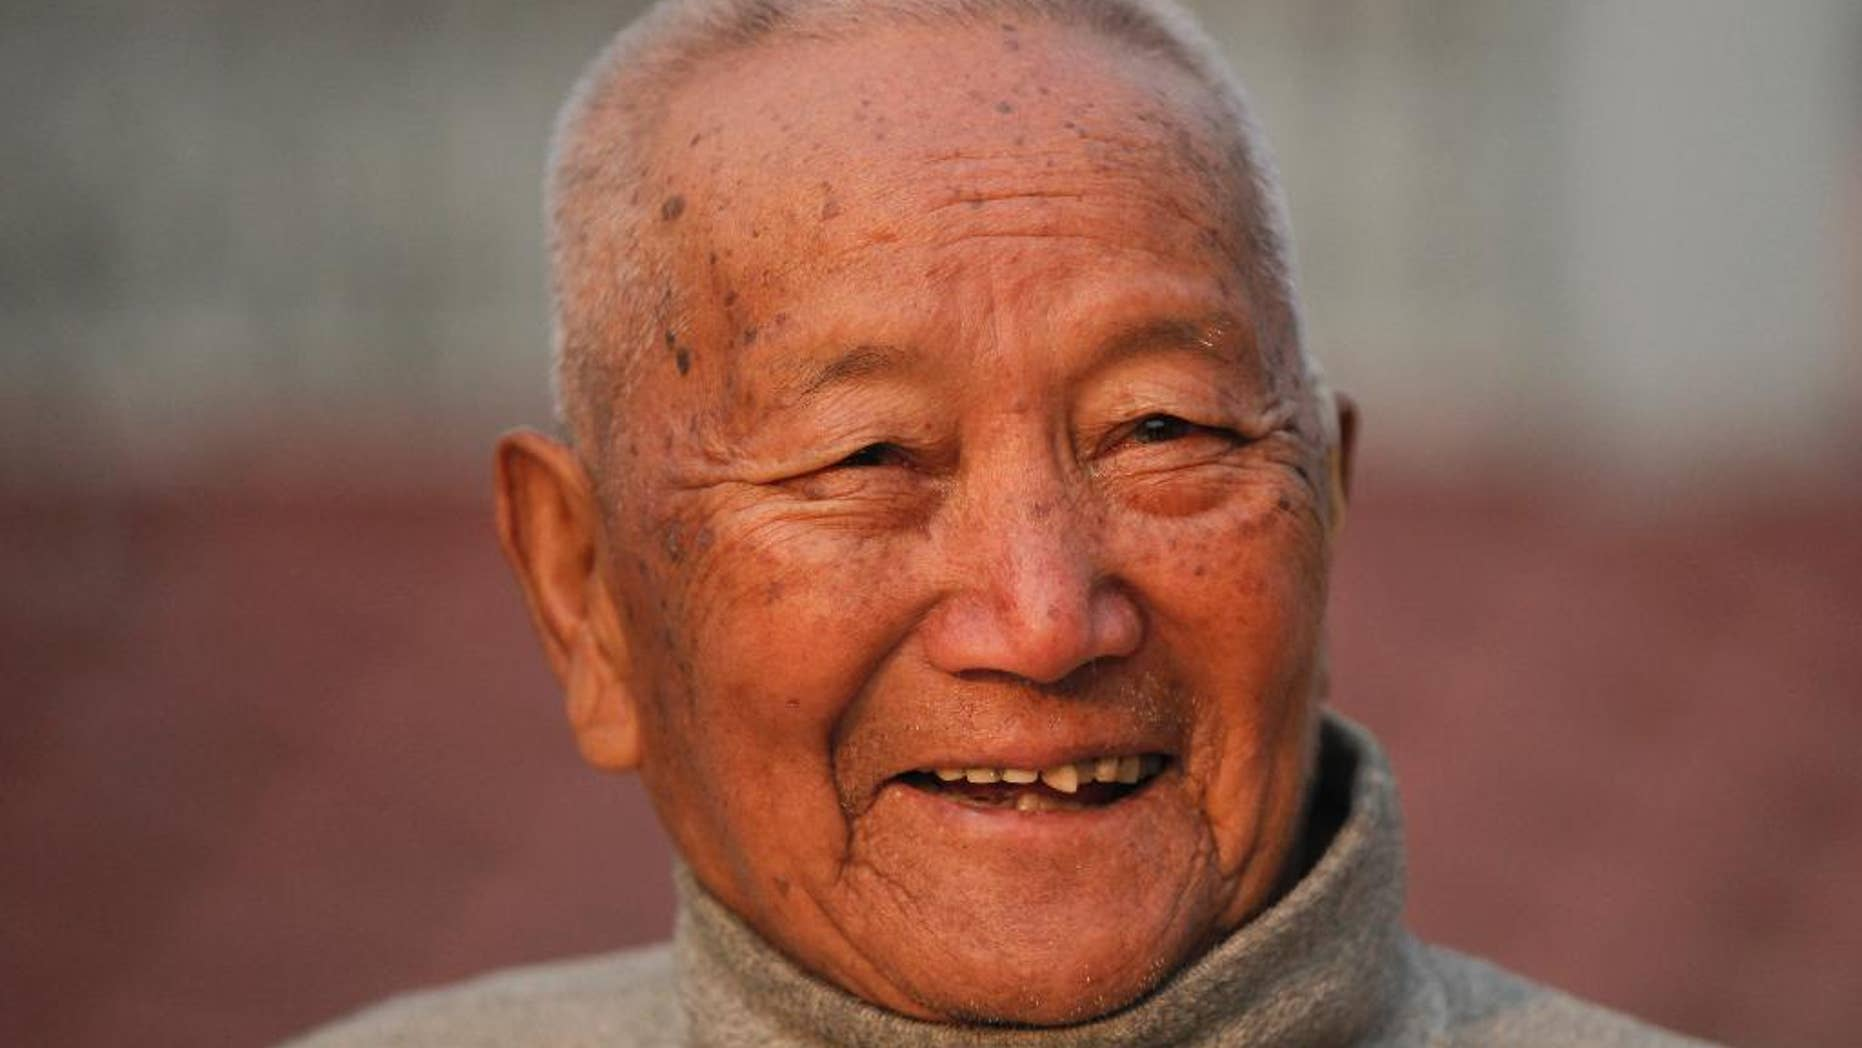 Nepalese mountain climber Min Bahadur Sherchan, 85, smiles after his morning yoga workout at home in Kathmandu, Nepal, last month.